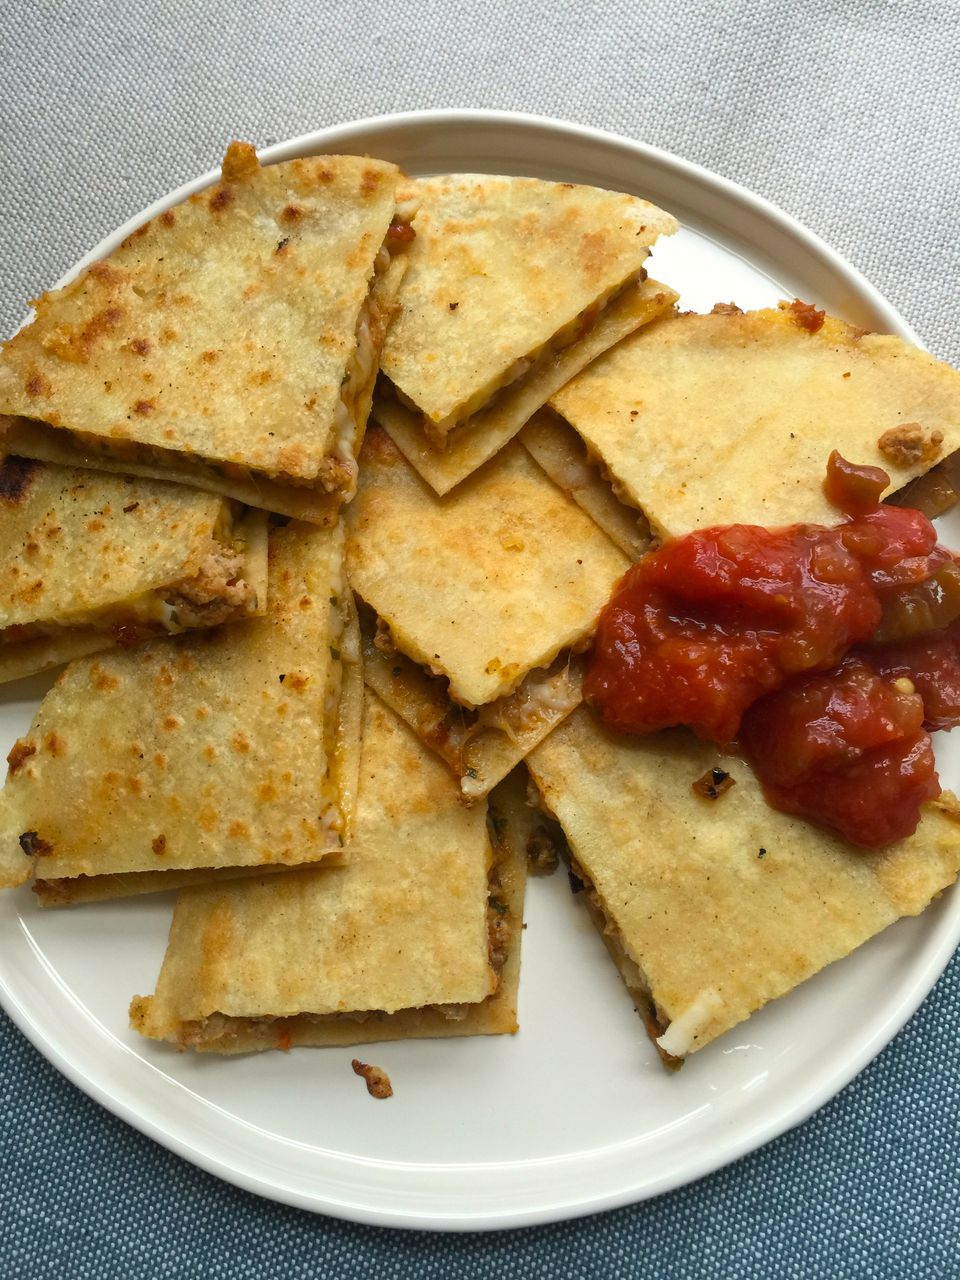 Grilled Quesadillas with Turkey and Sundried Tomato Pesto